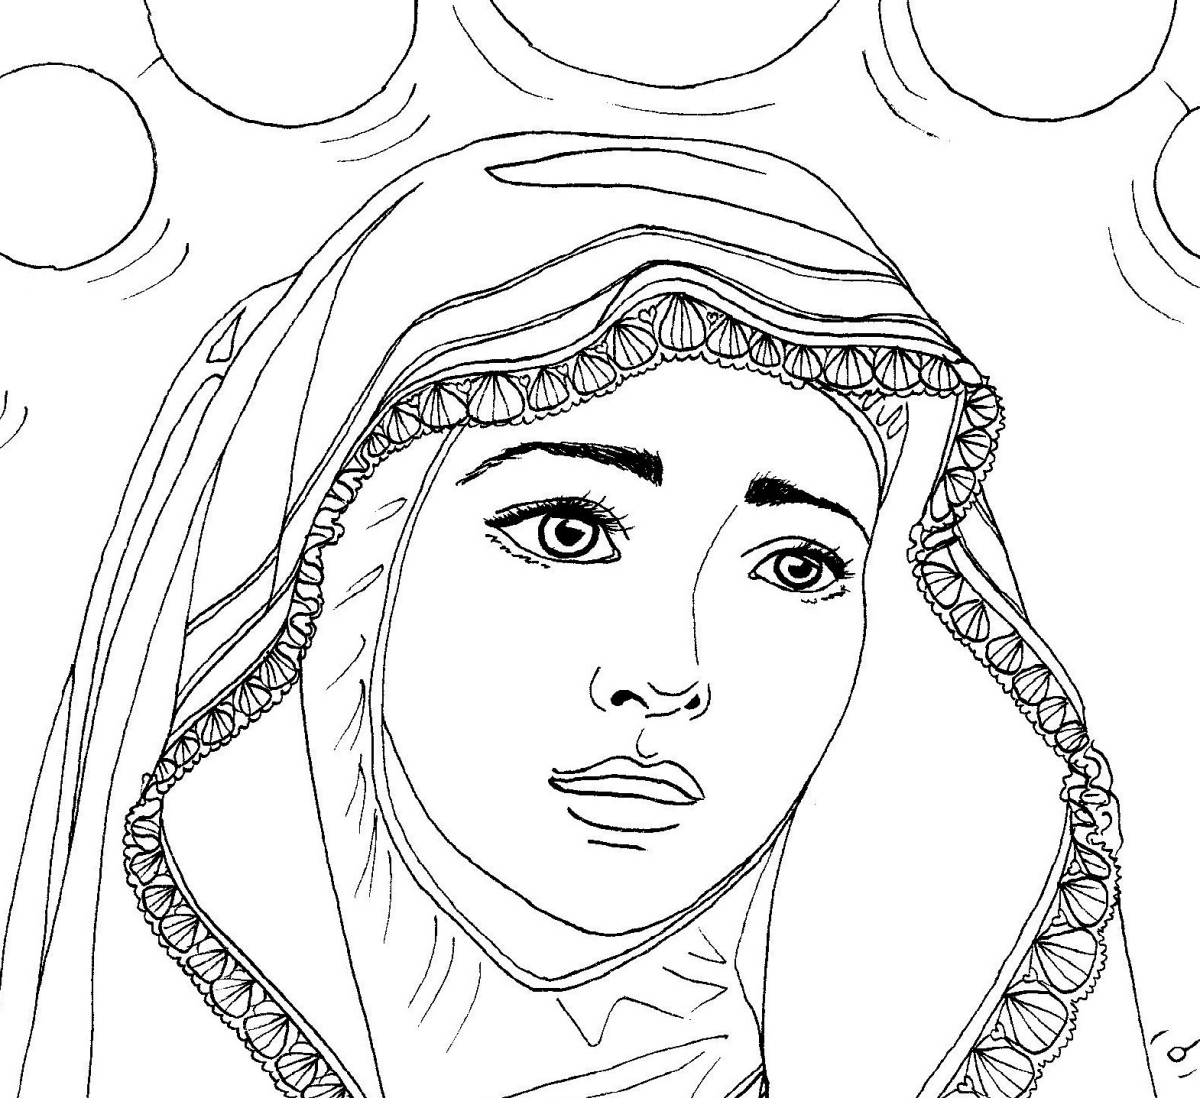 Our Lady of Fatima — Catholic Coloring Page